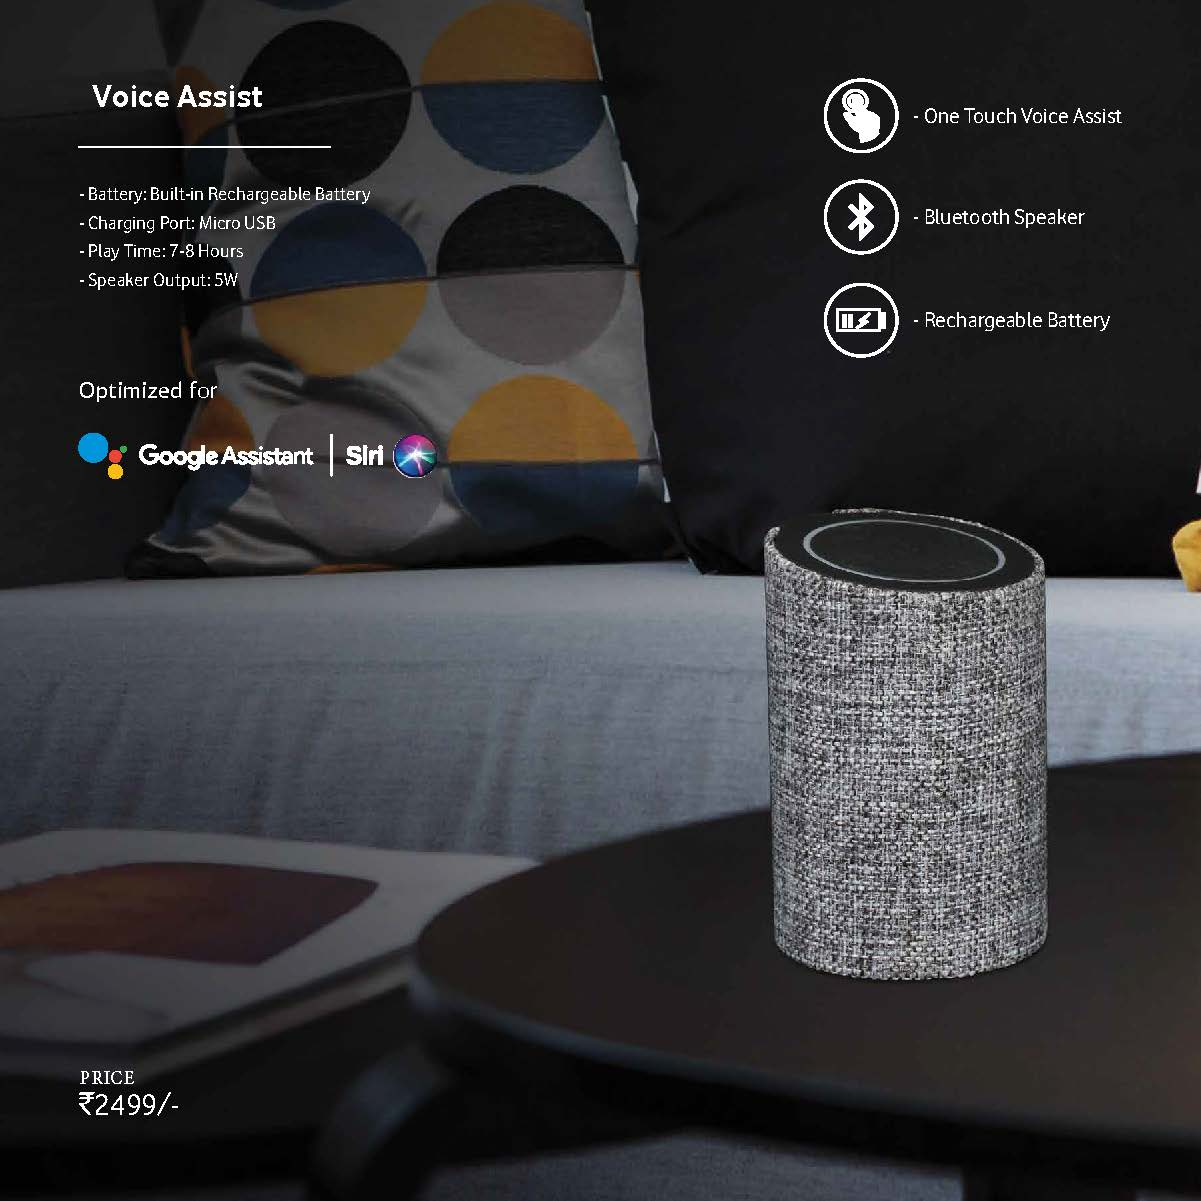 Voice Assist Bluetooth Speaker Optimized for Siri & Google Voice Assistant